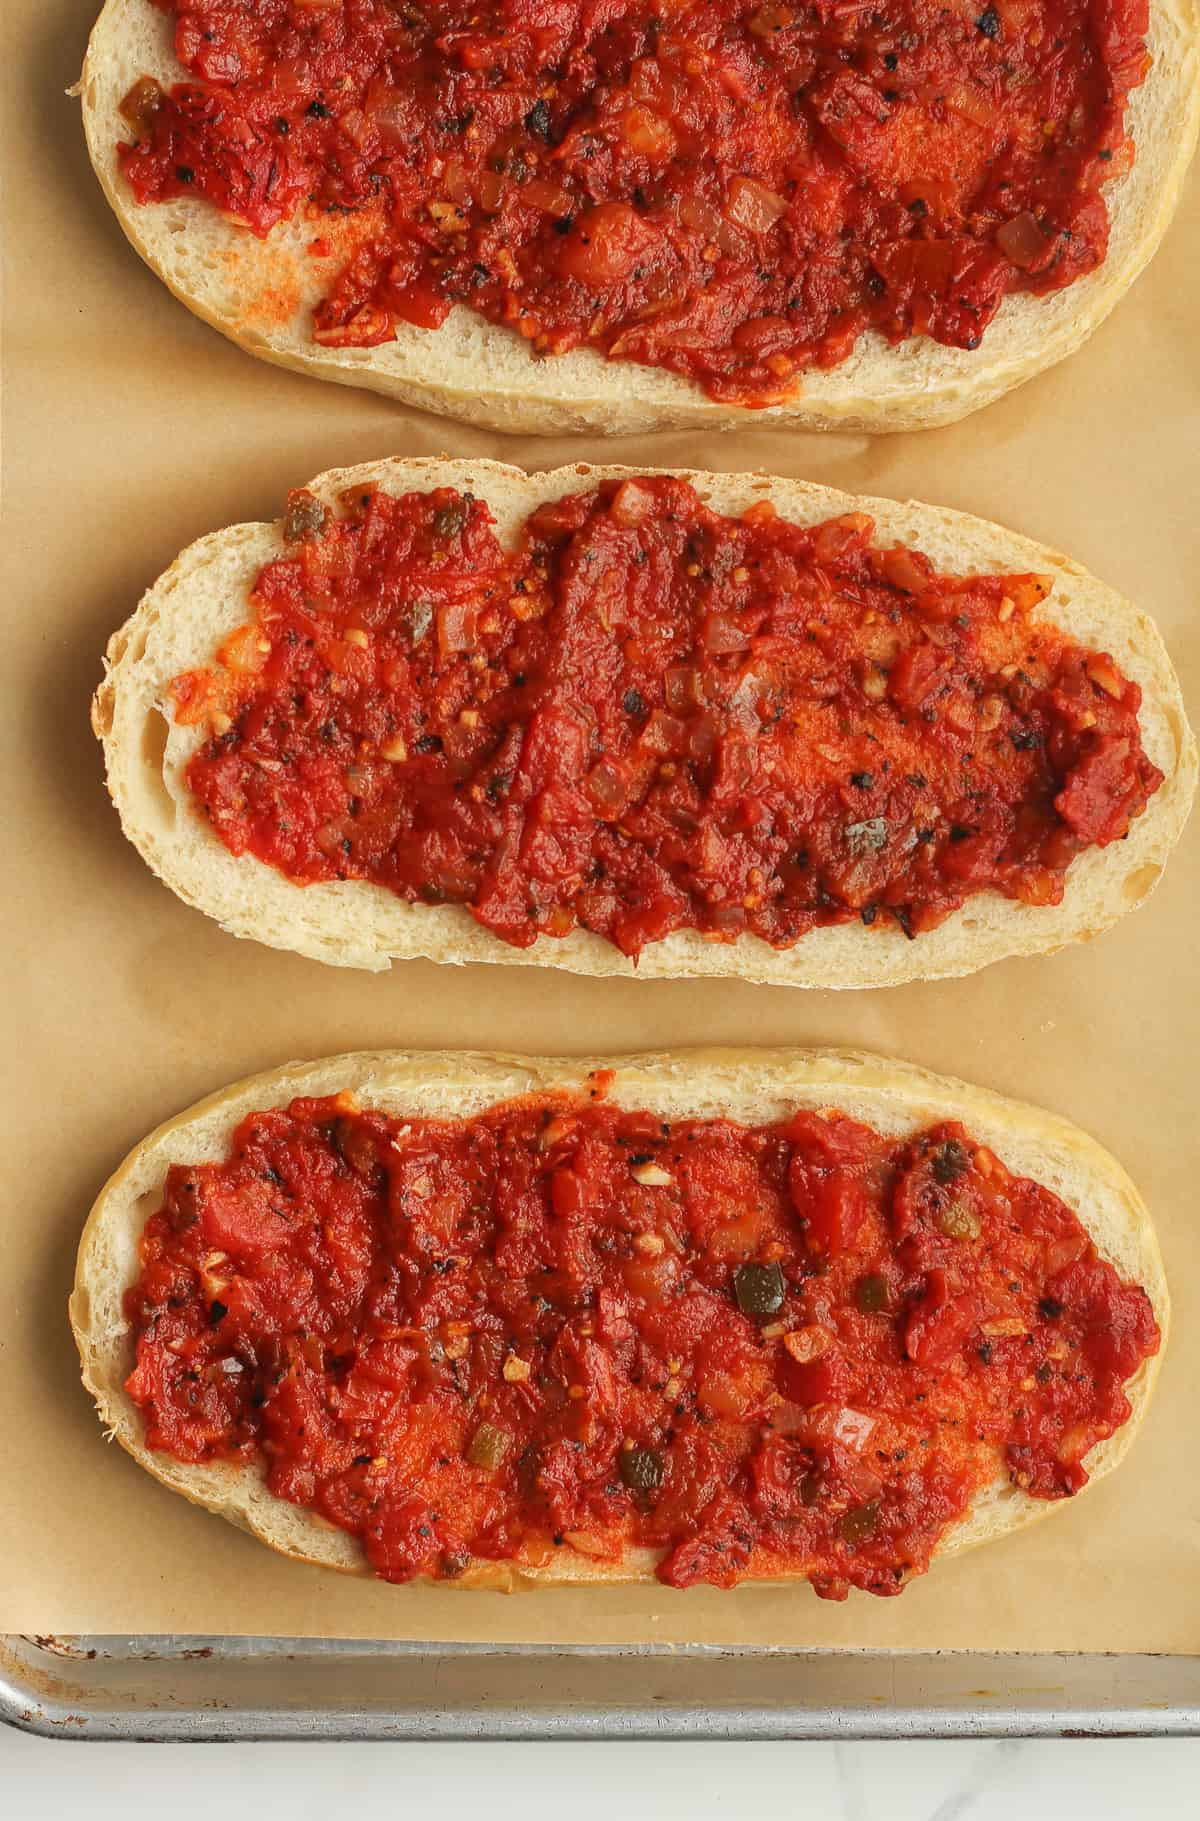 Homemade pizza sauce on French bread.